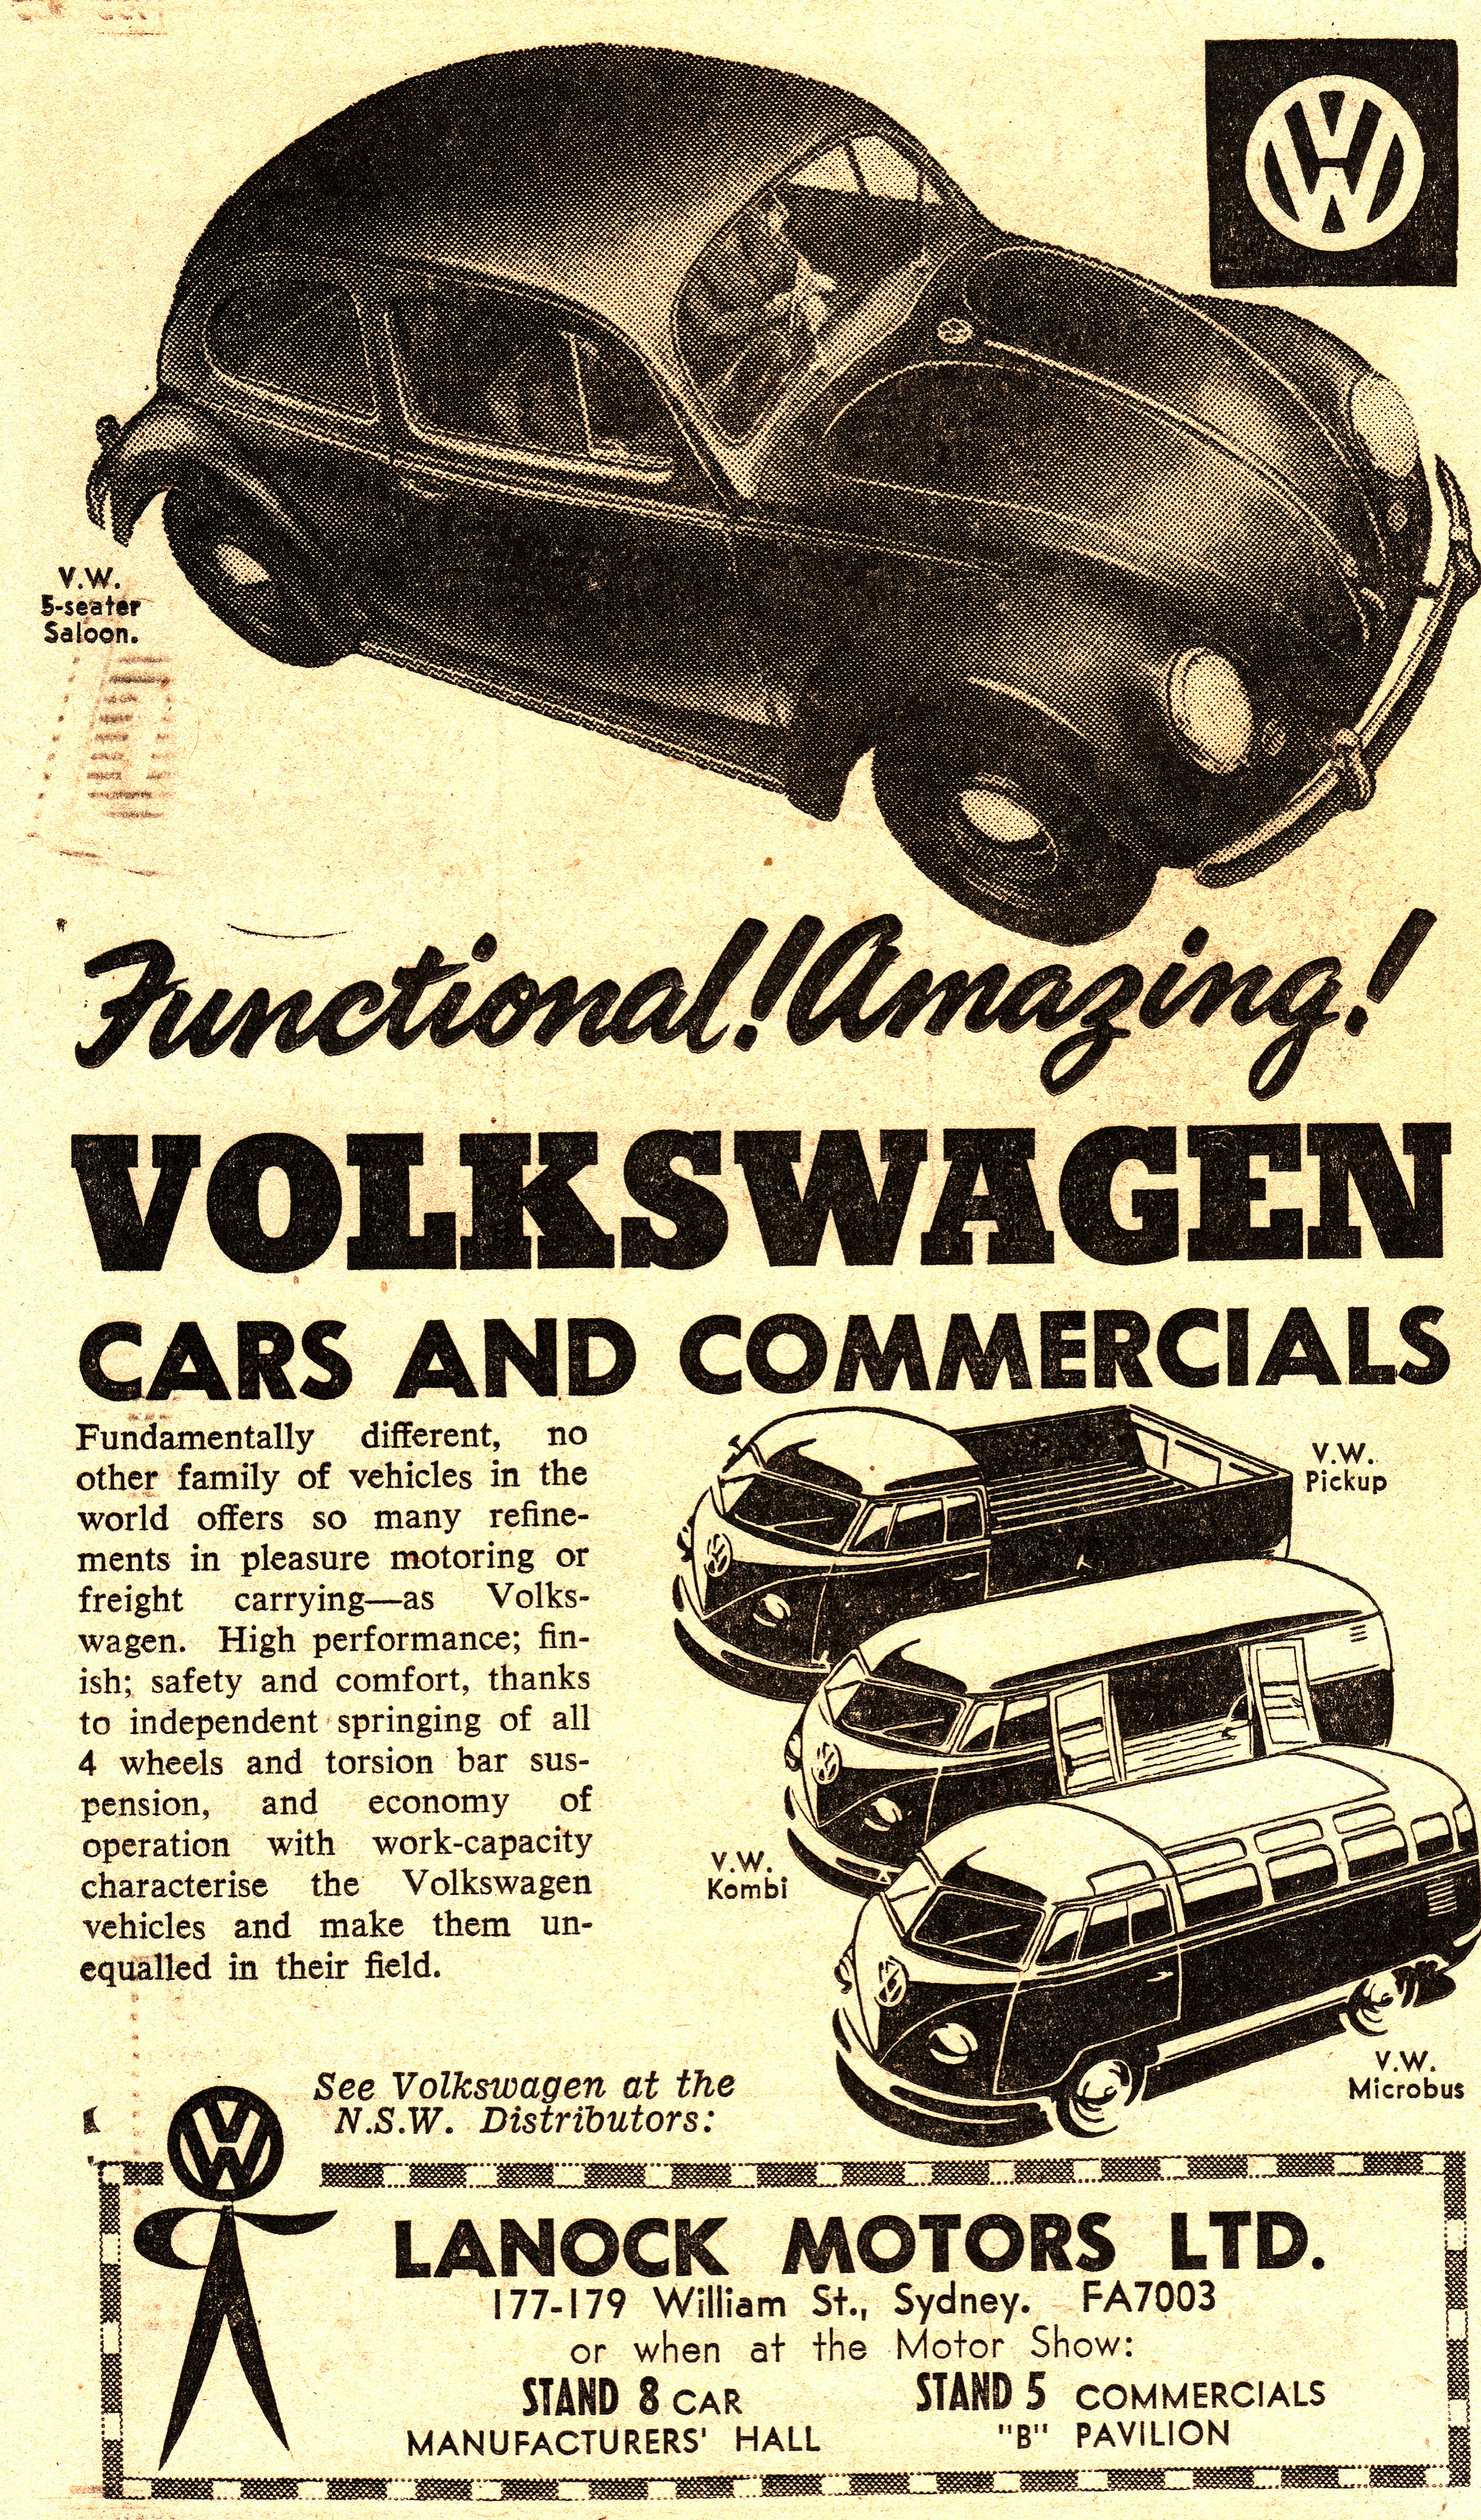 1955 VW Beetle, Ute & Van Ad - Australia | Flickr - Photo Sharing!